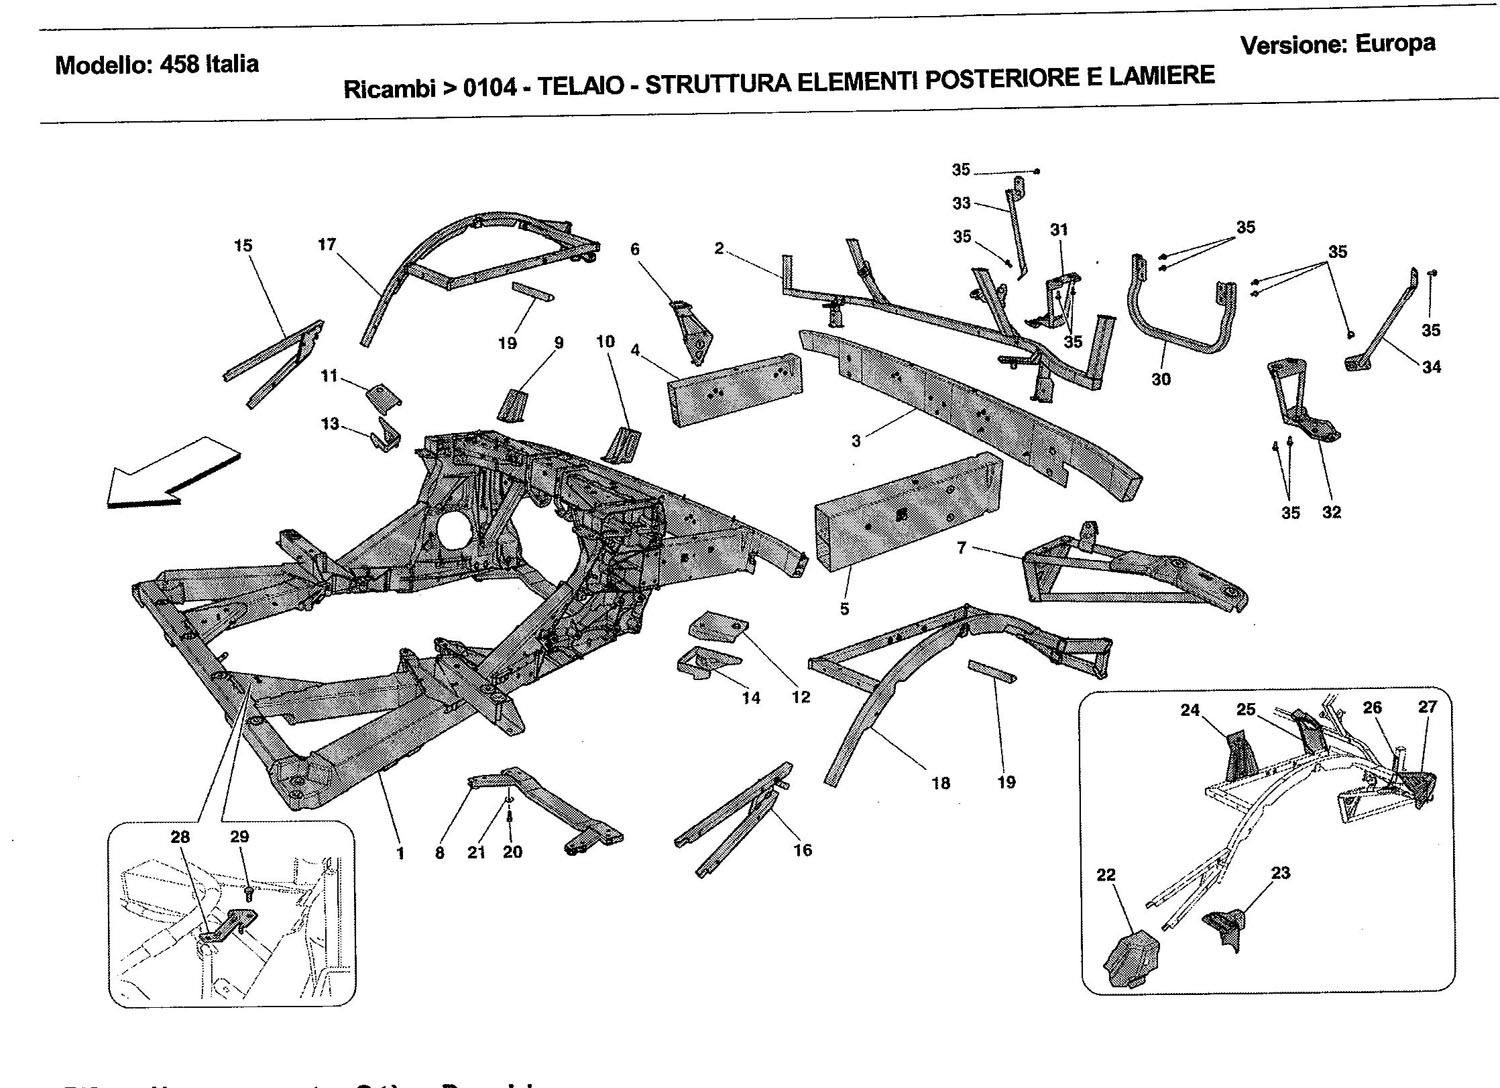 FRAME - REAR ELEMENTS STRUCTURES AND PLATES